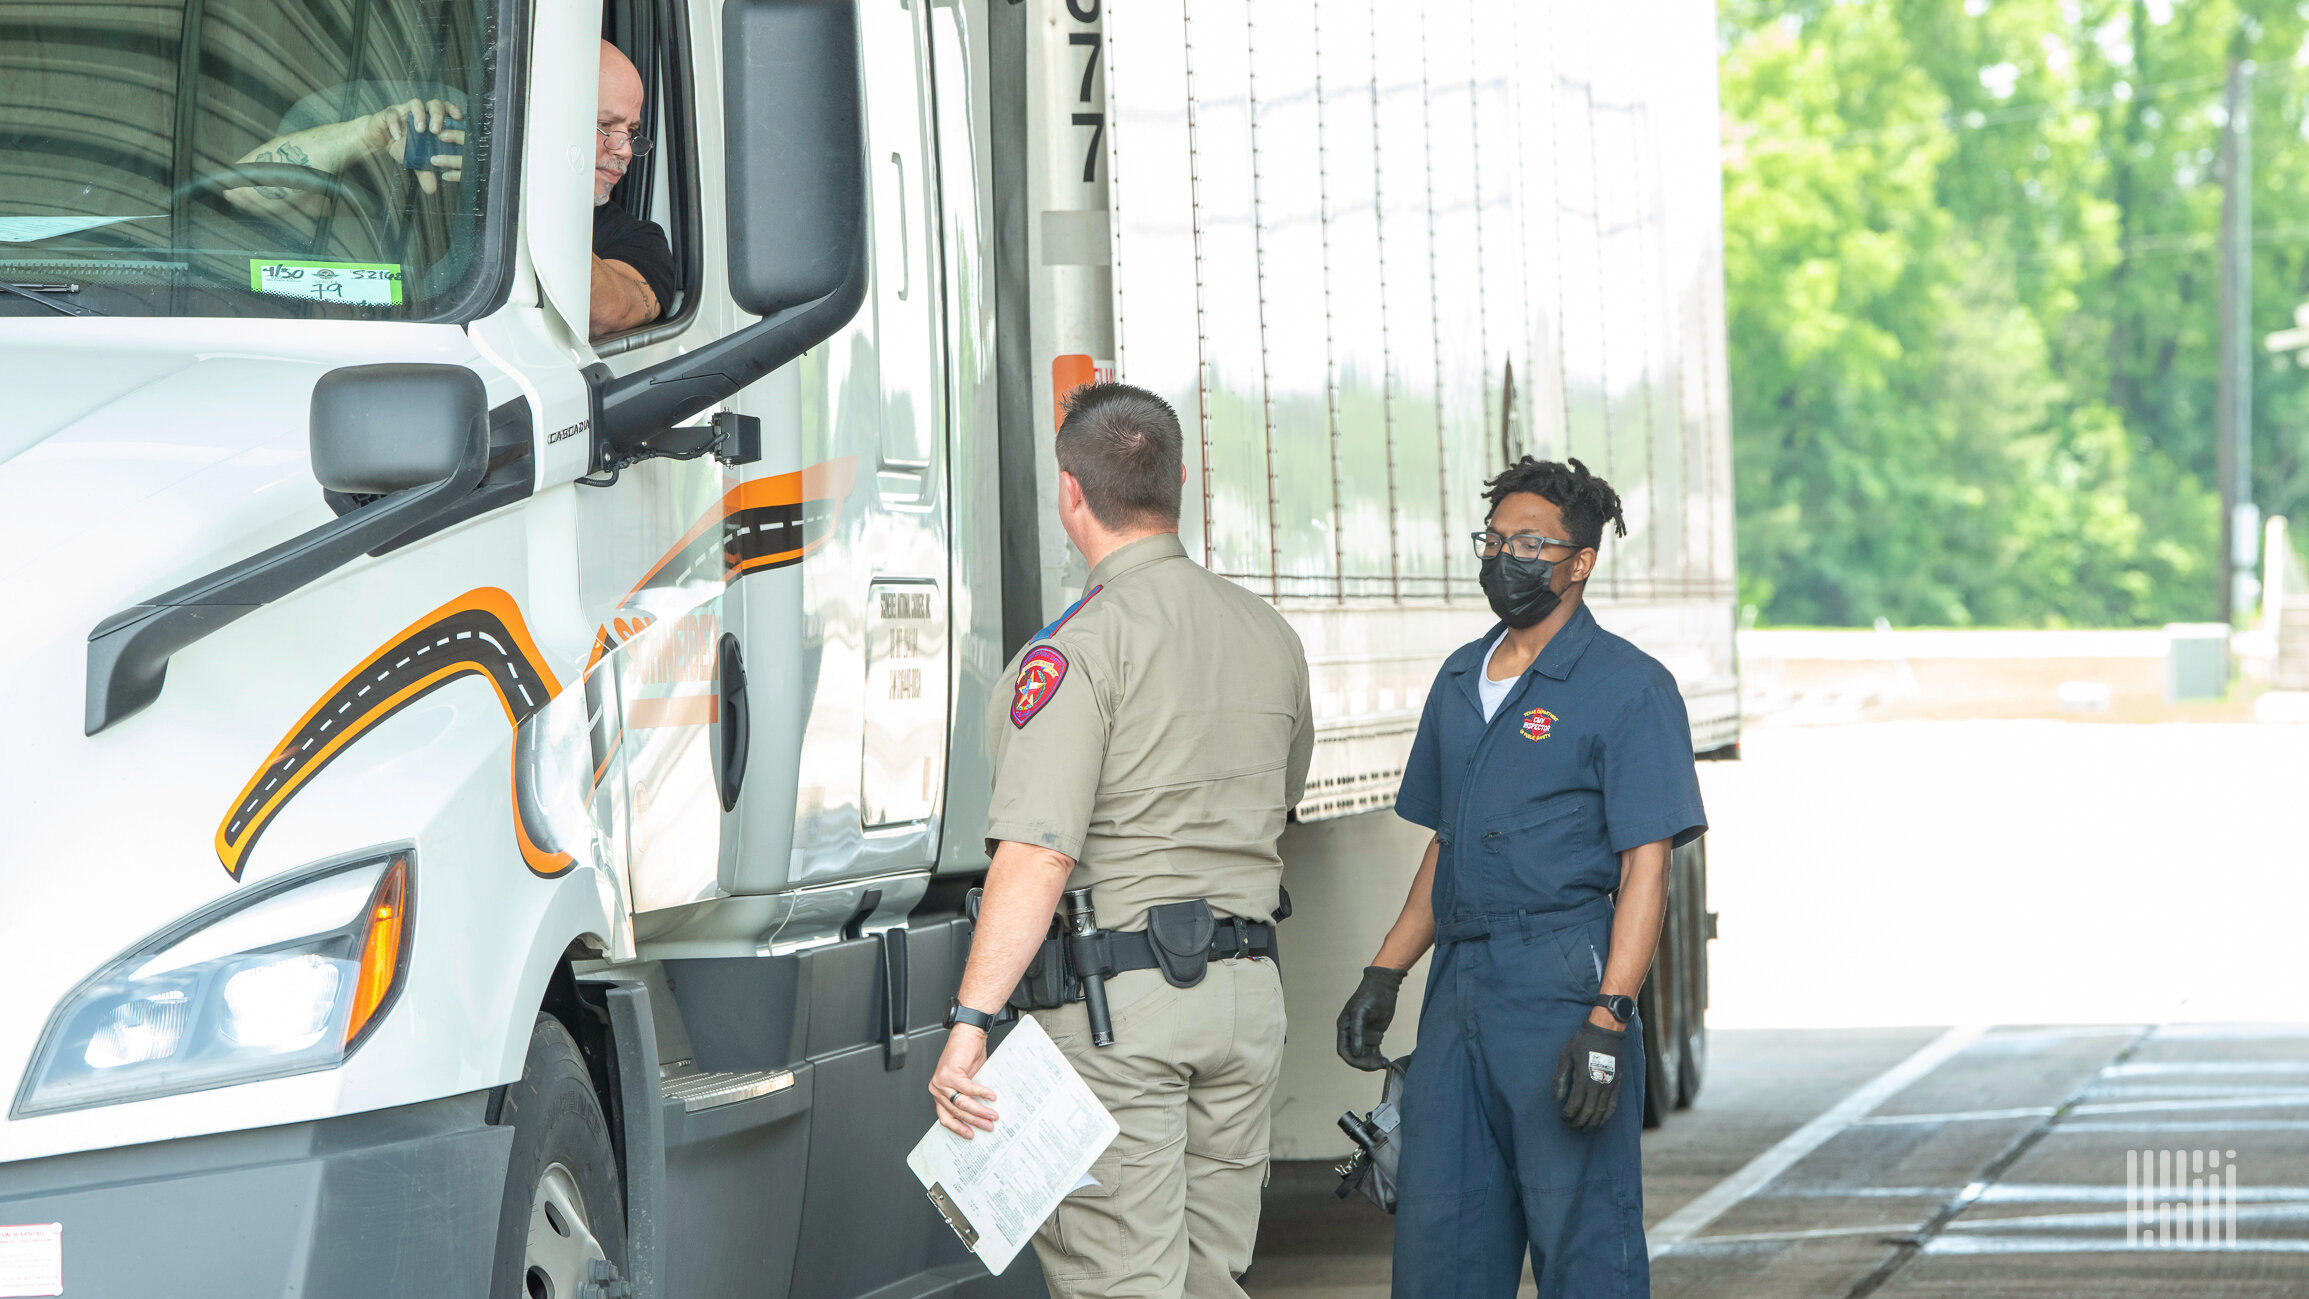 Operation Safe Driver Week is scheduled. Here's what inspectors will look for